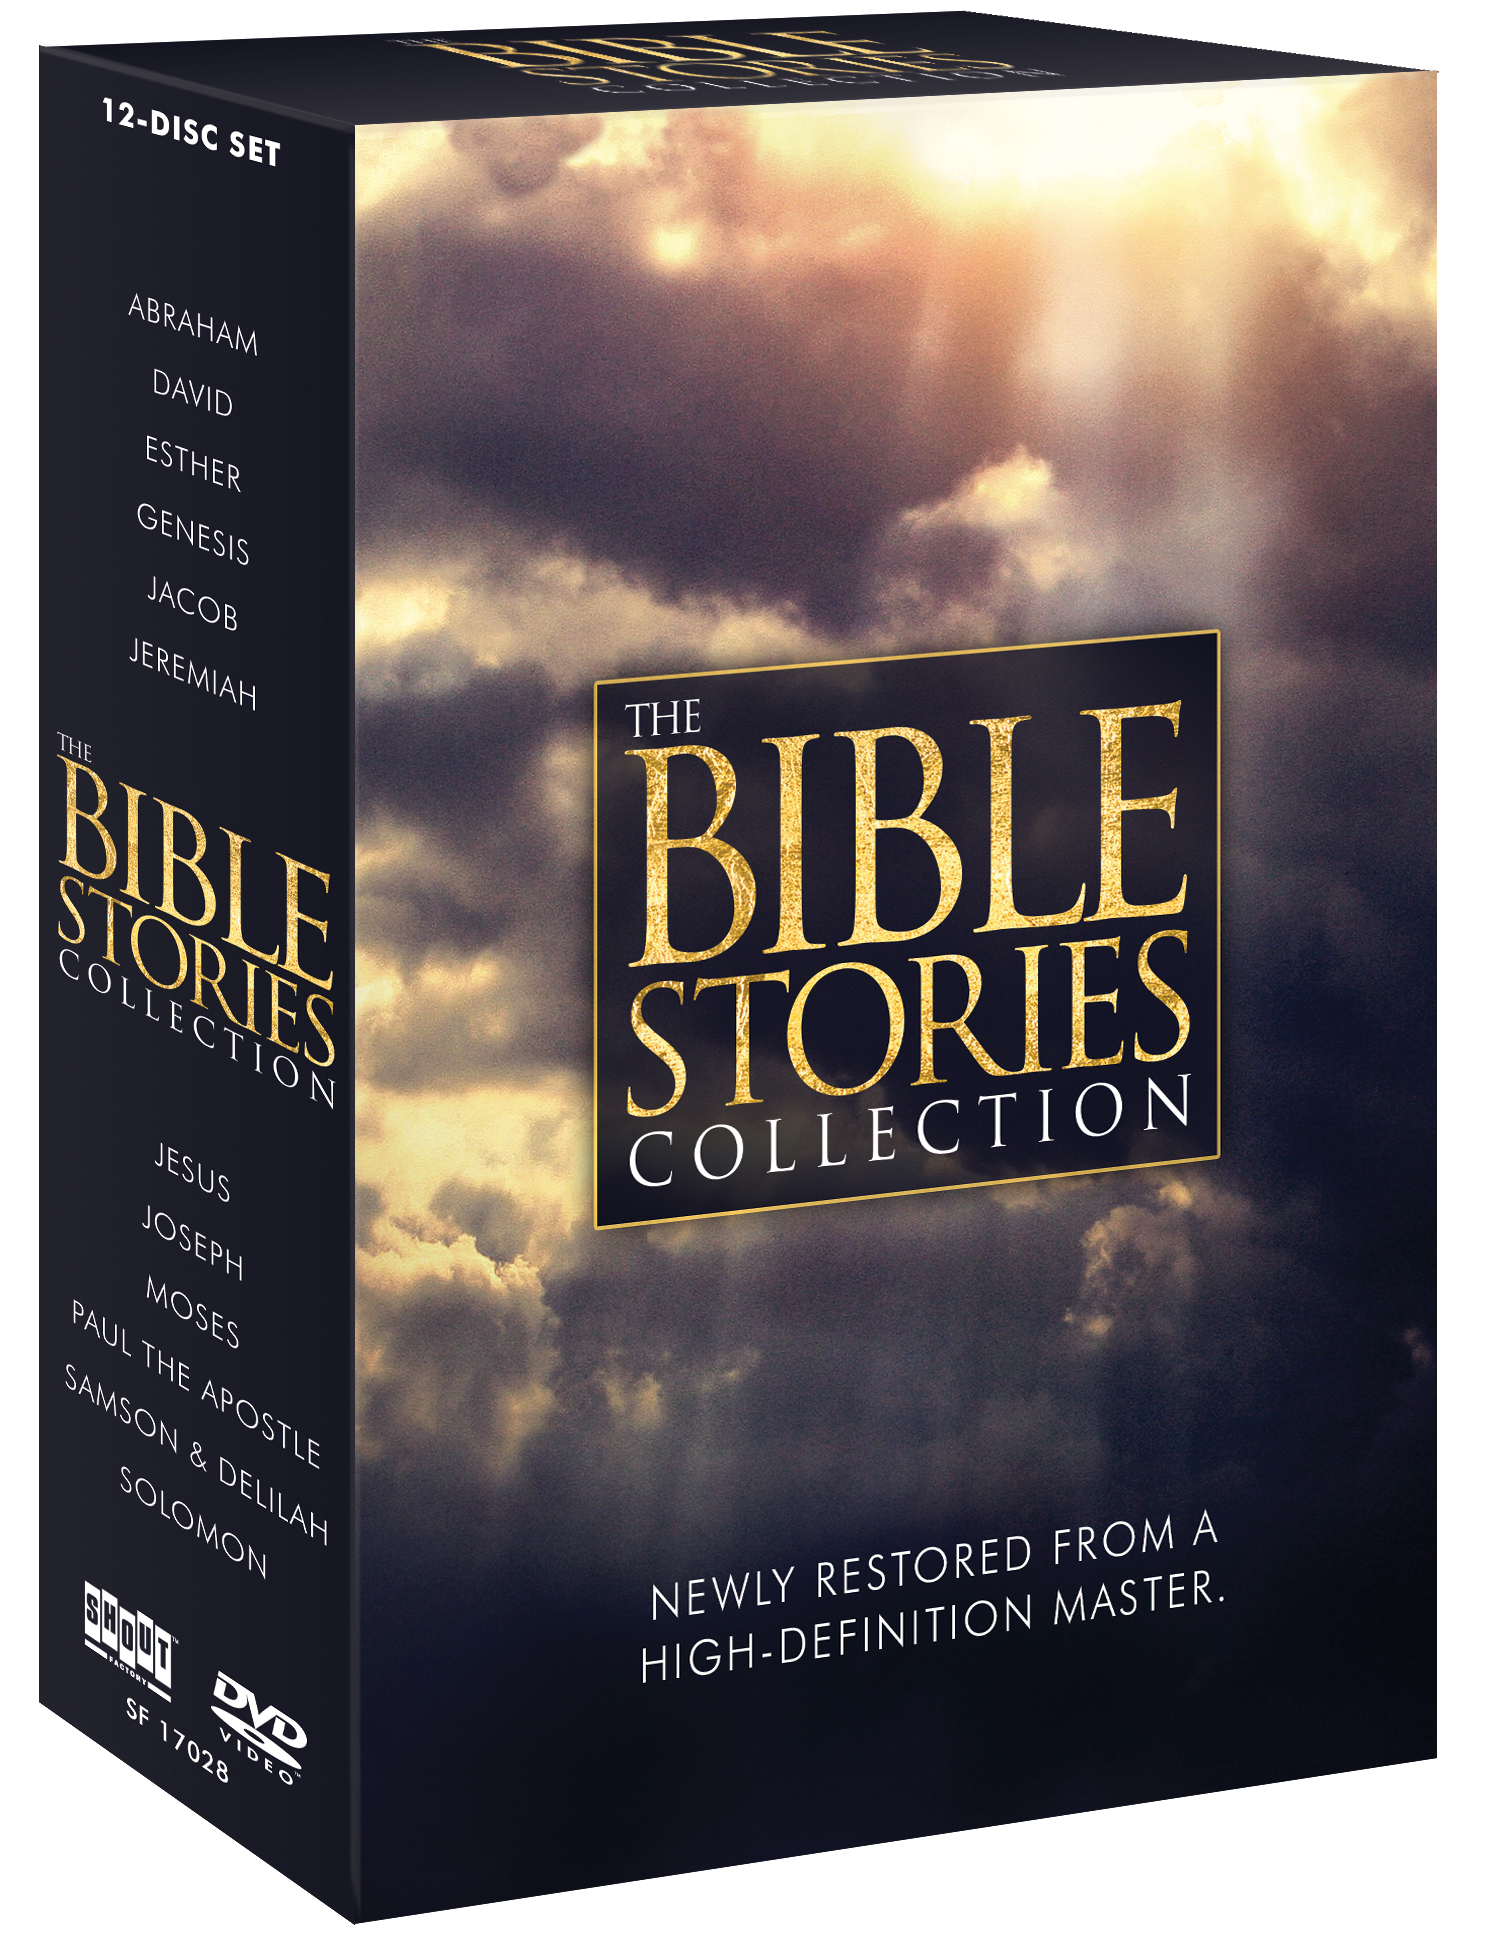 The Bible Stories Collection - Shout! Factory - Cinedigm ... Ben Kingsley